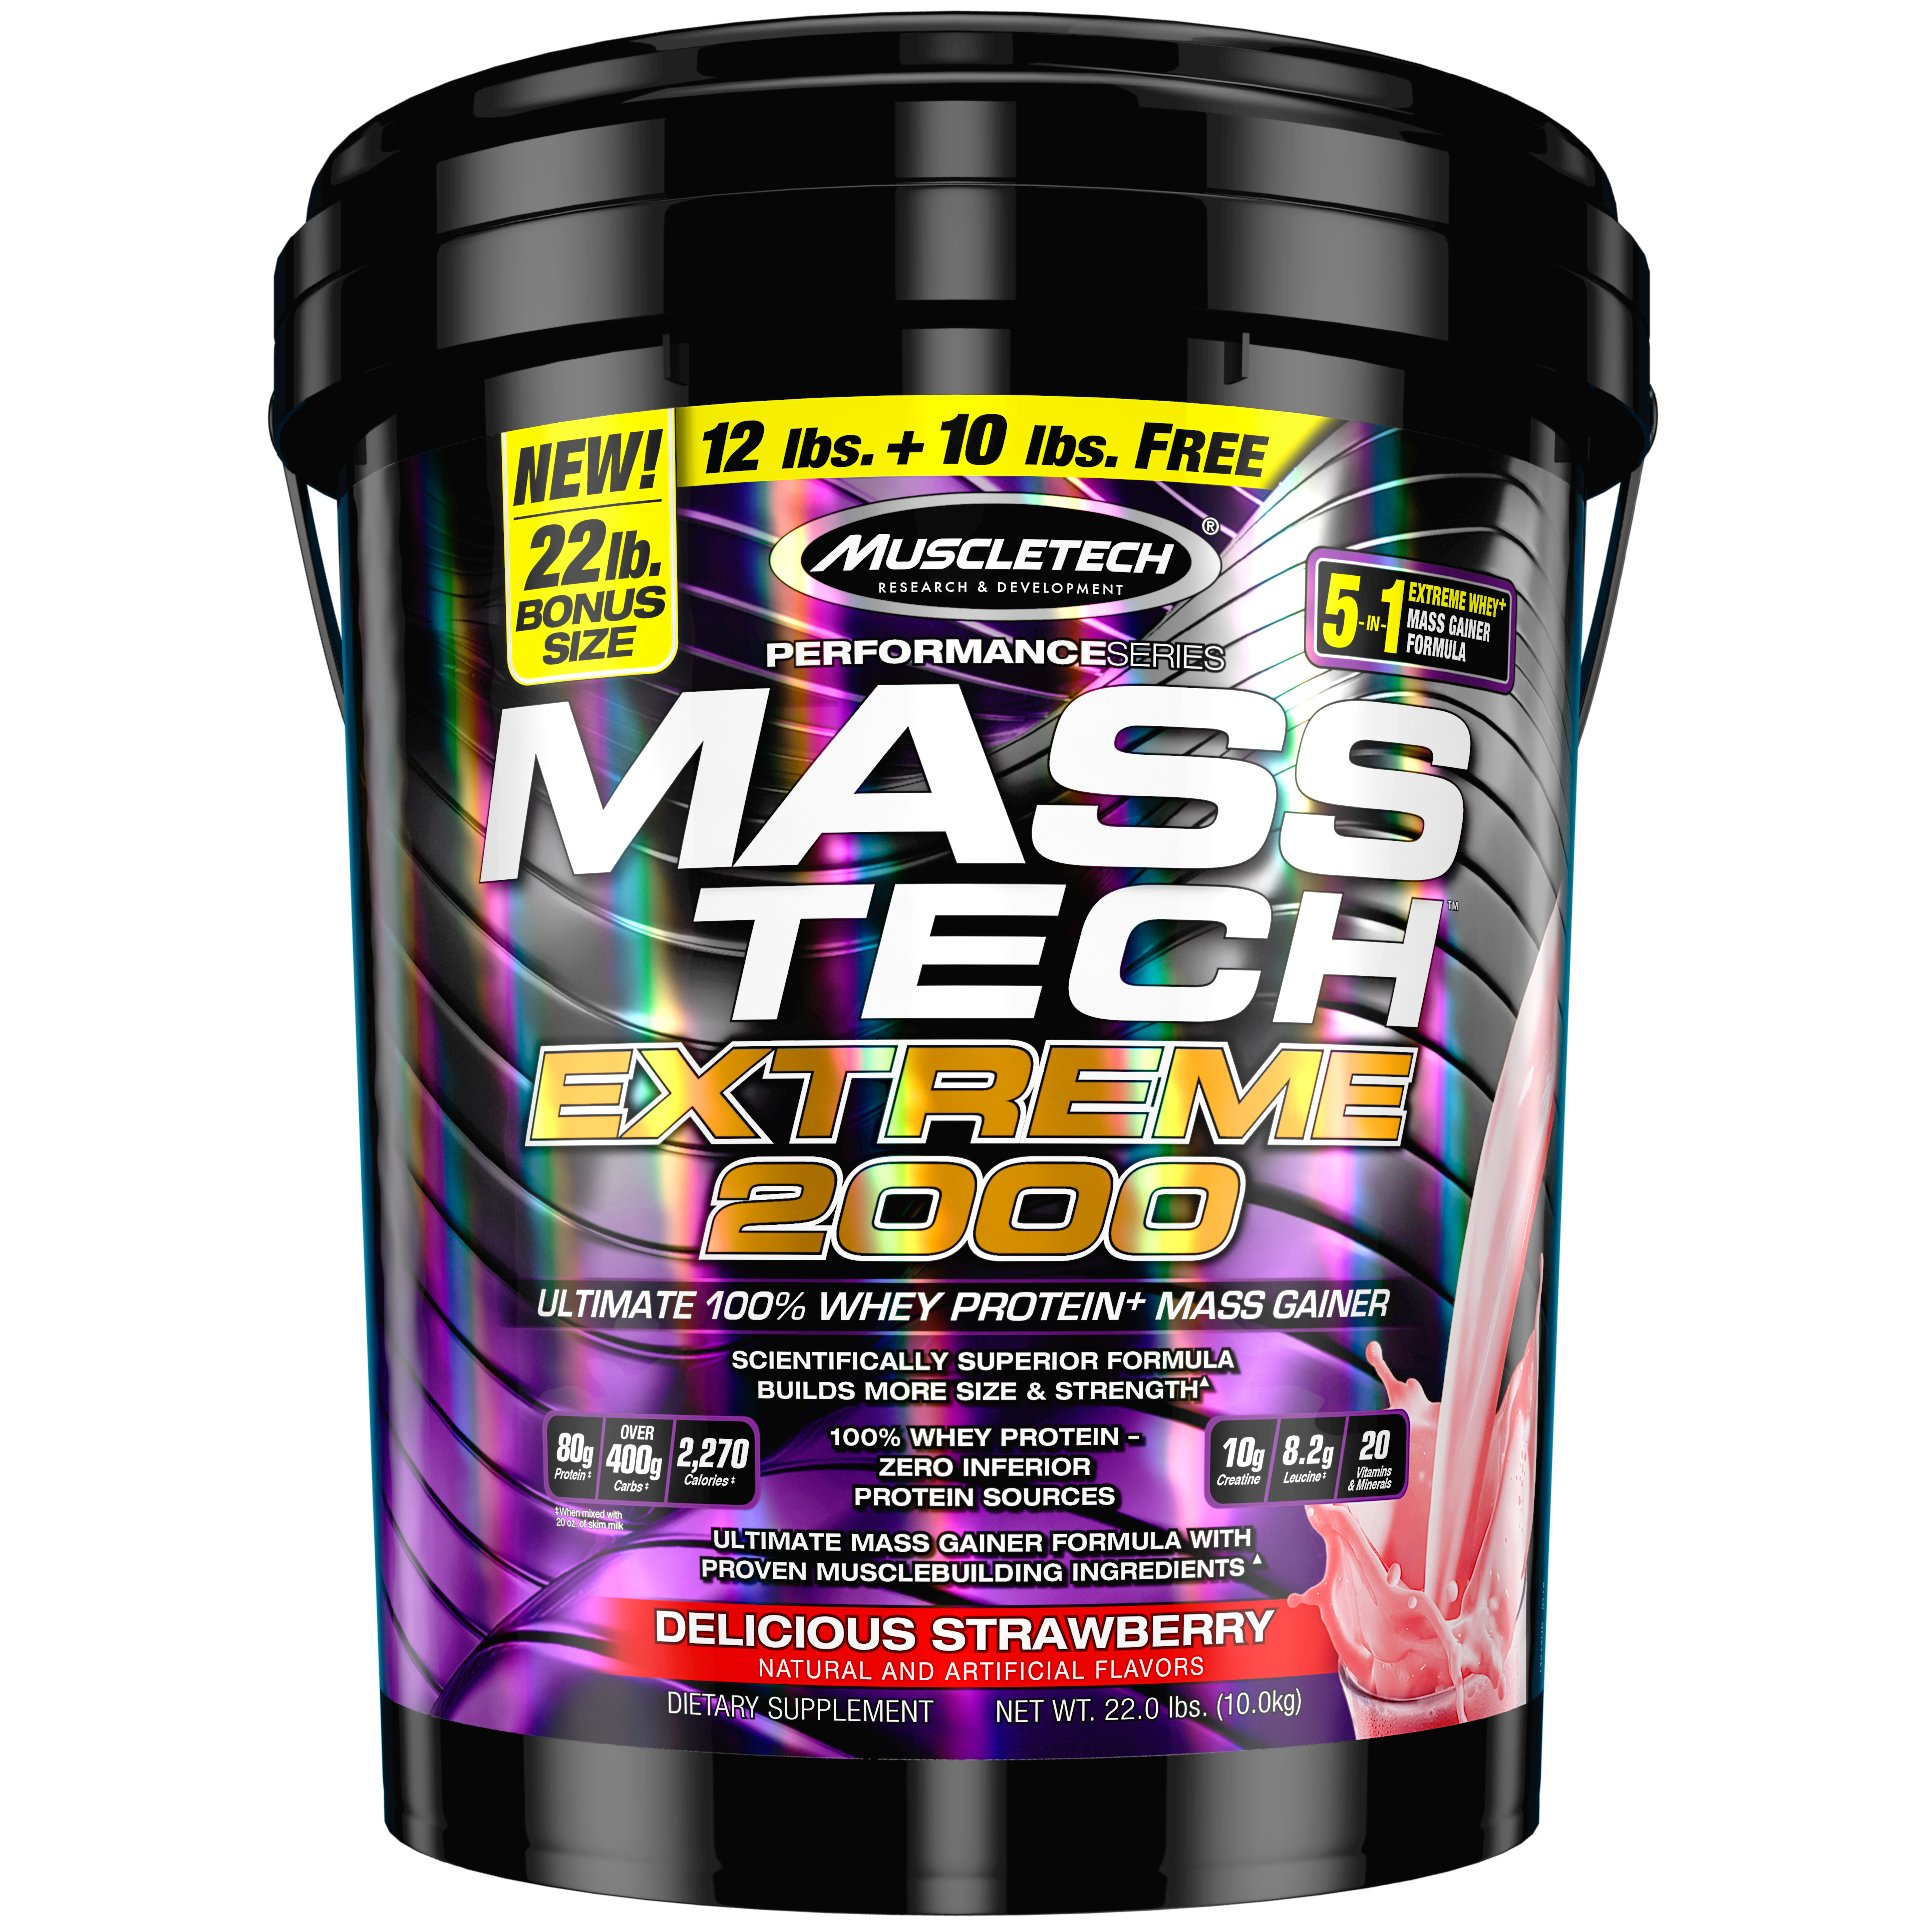 MuscleTech Mass Tech Extreme Weight Gainer Protein Powder, Strawberry, 22lbs (10kg)